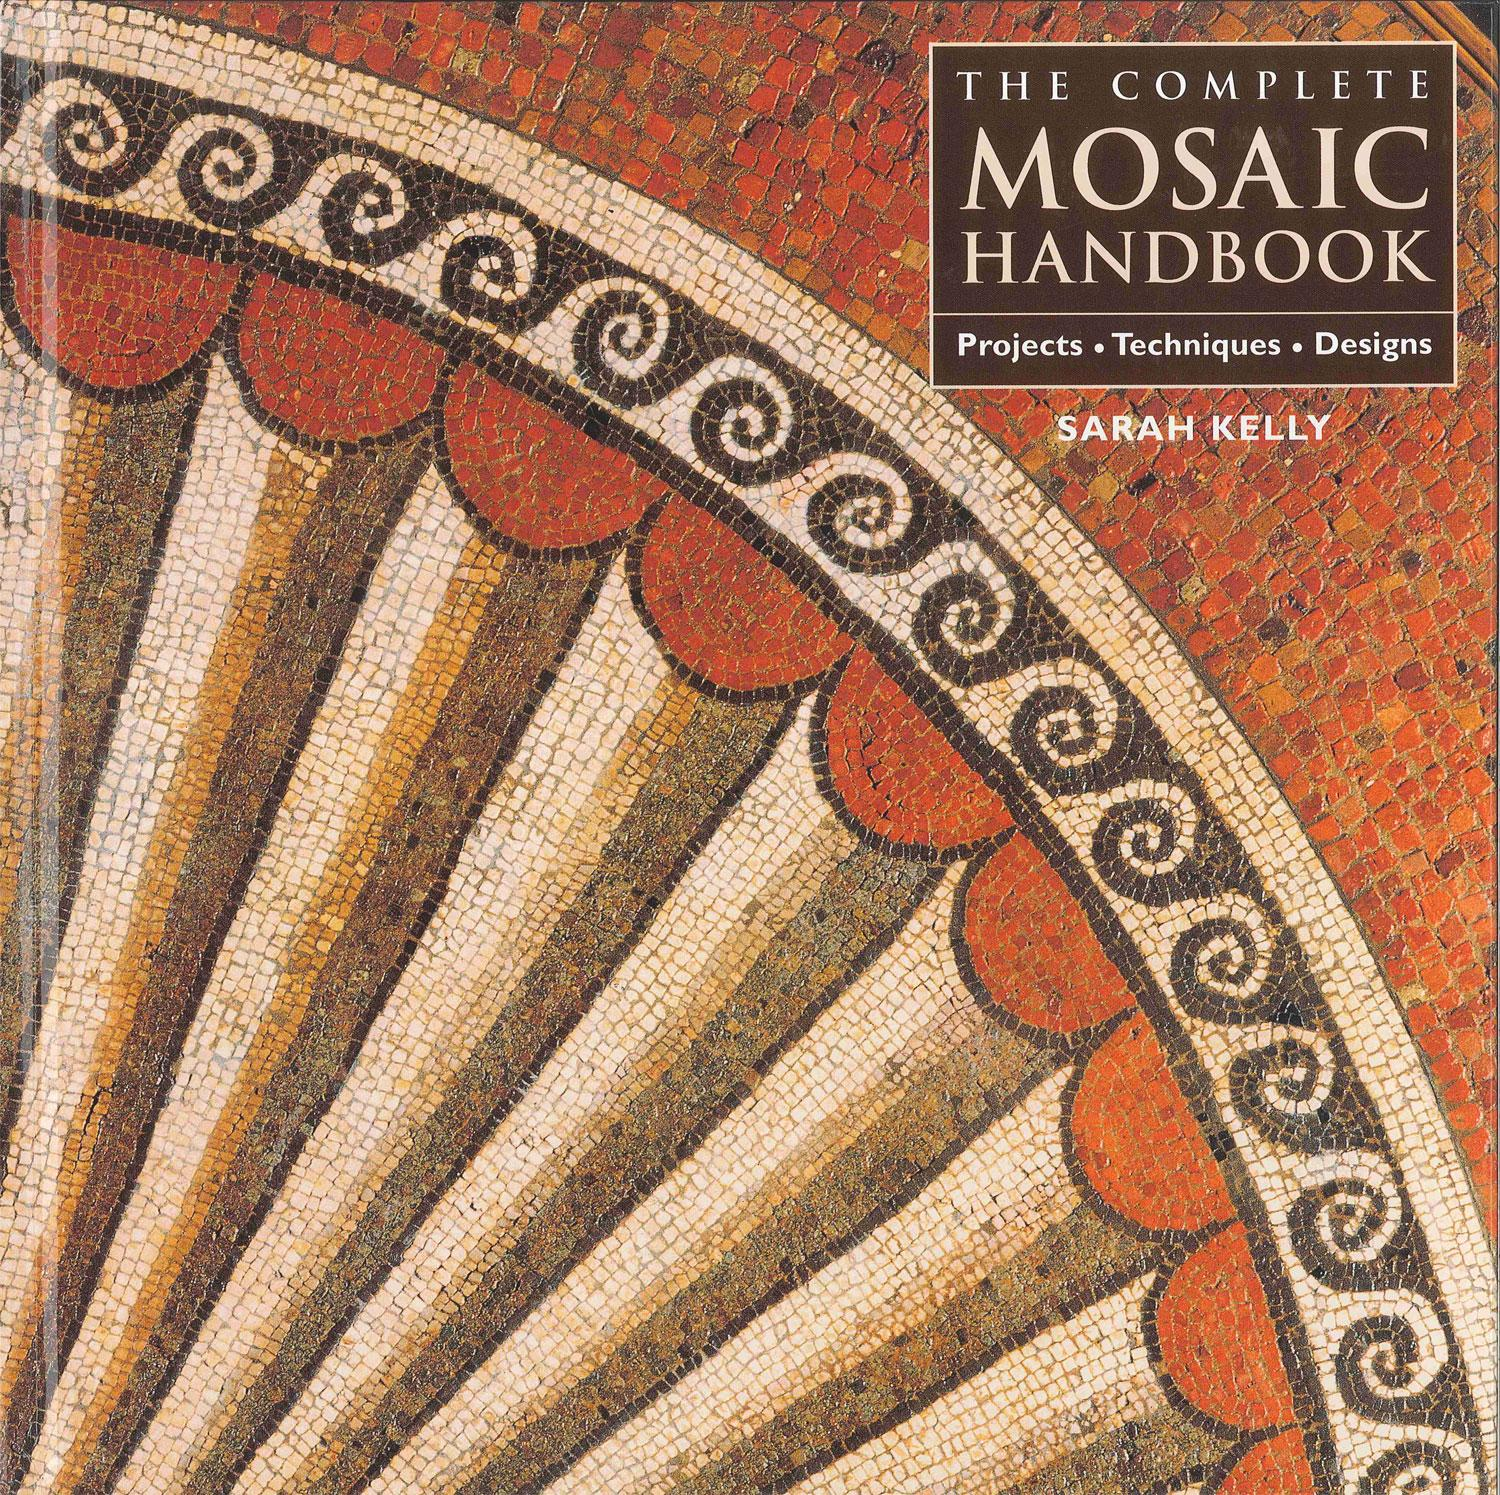 The Complete Mosaic Handbook